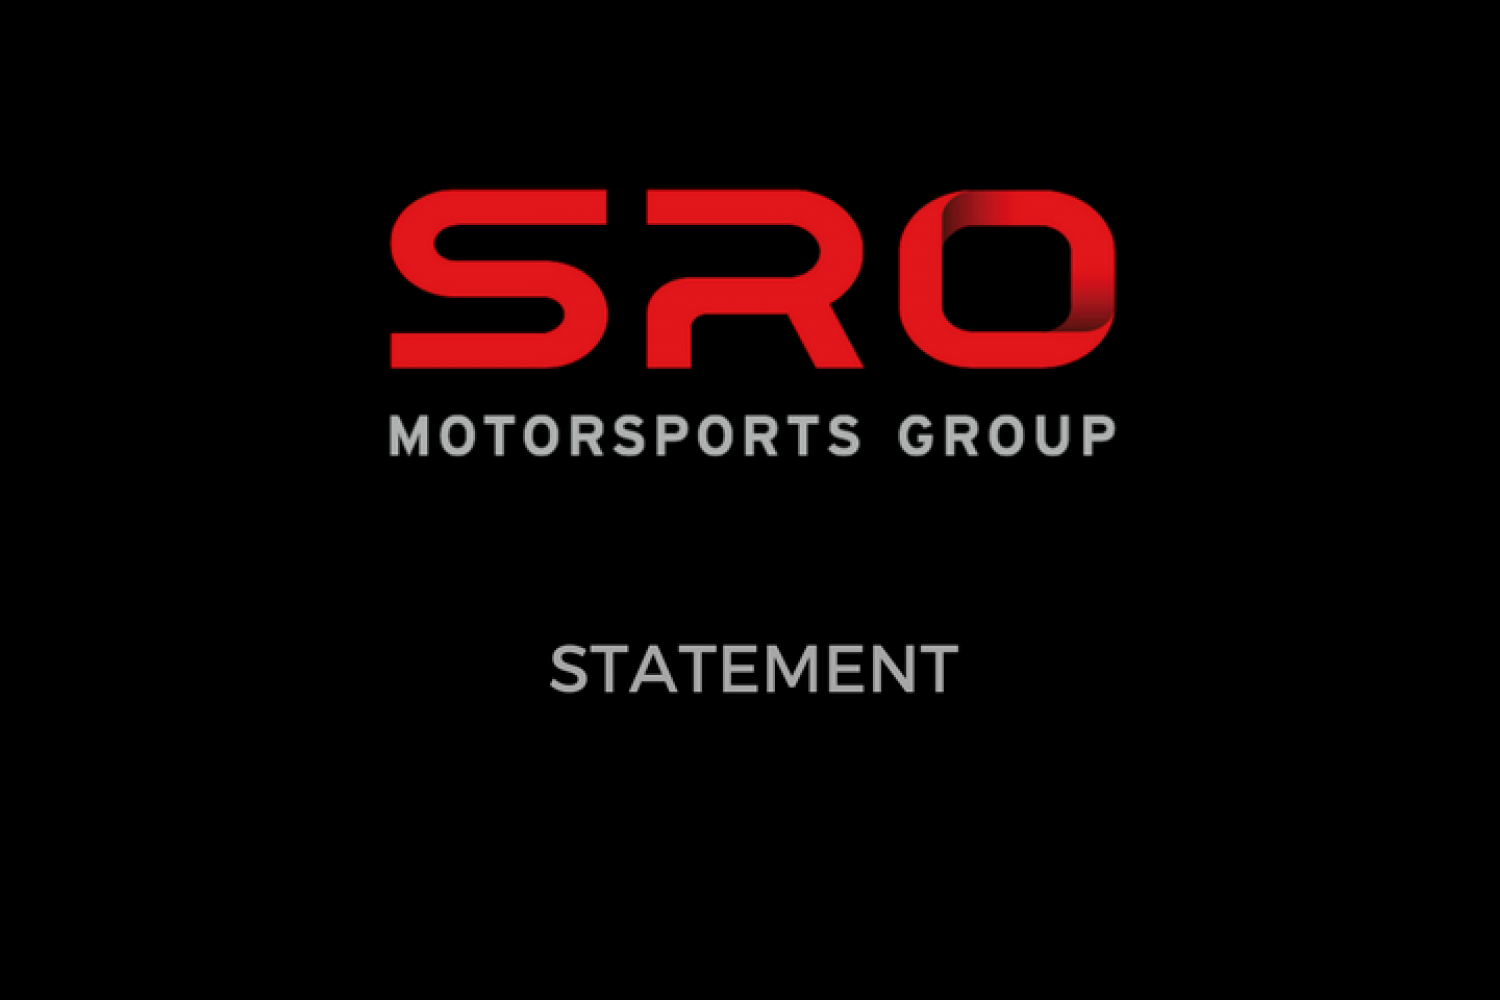 Statement from SRO Motorsports Group